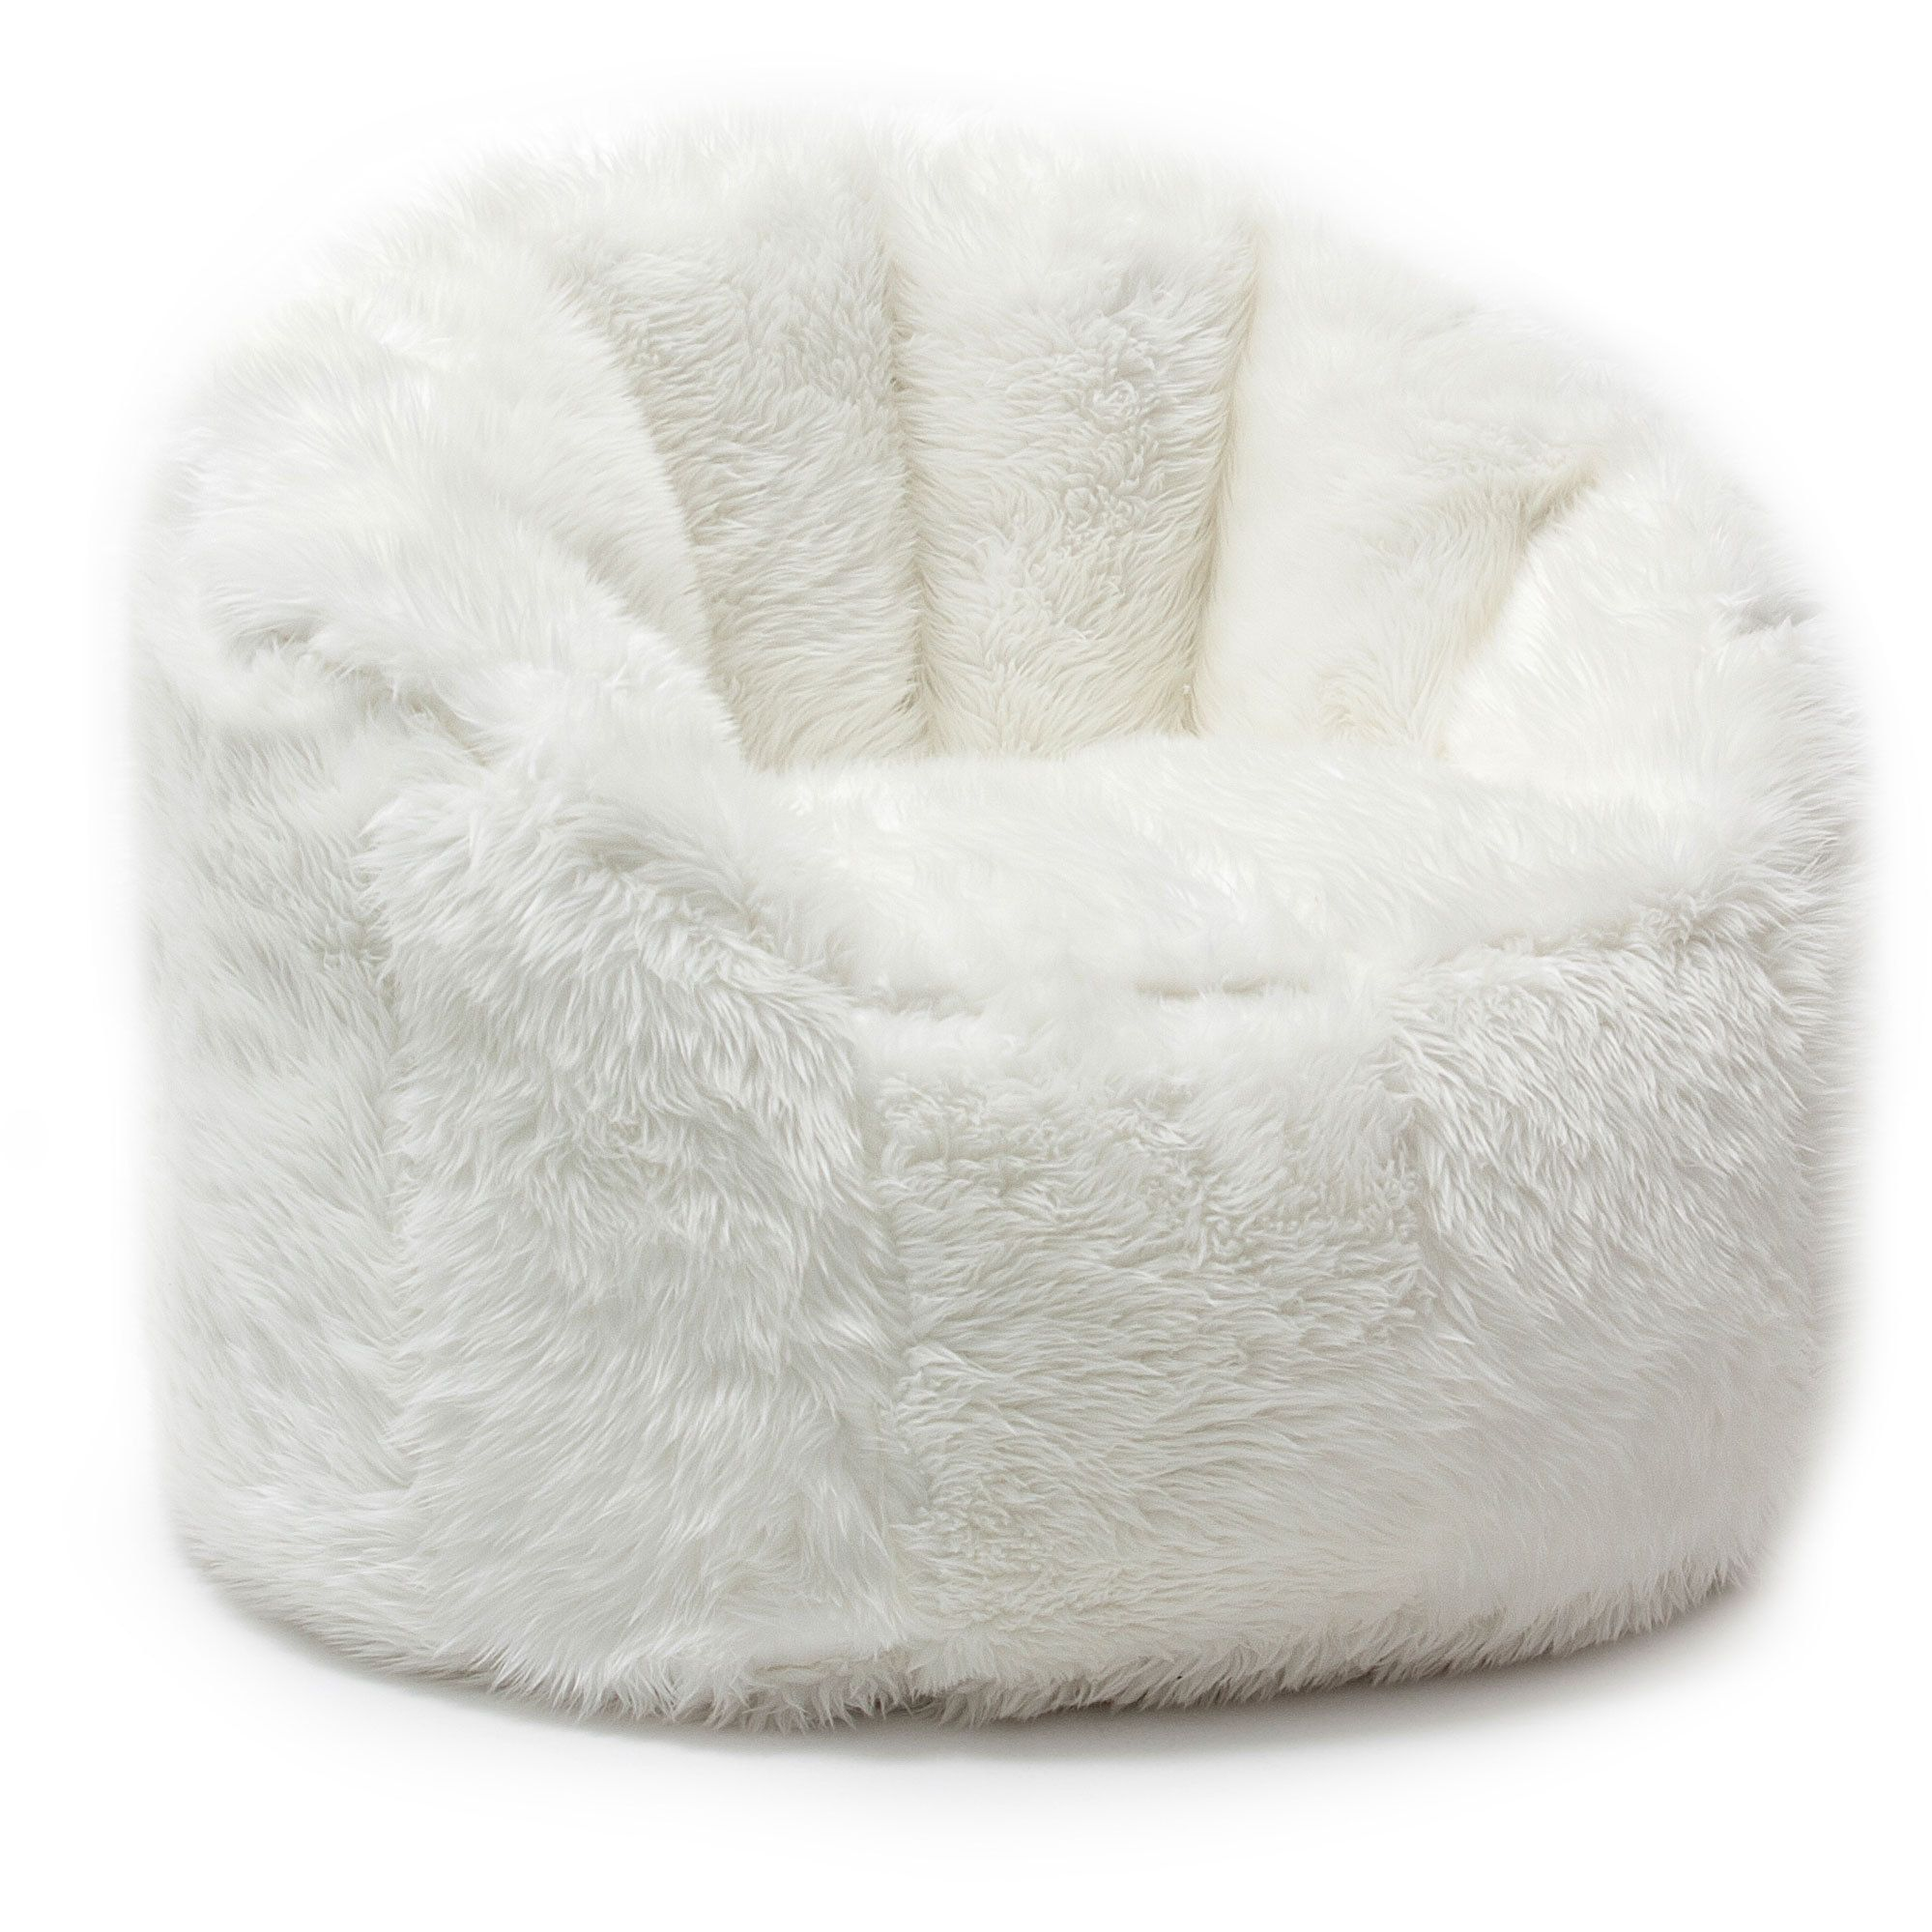 Bean bag chairs for teenage girls - Comfort Research Beansack Big Joe Milano Faux Fur Bean Bag Chair